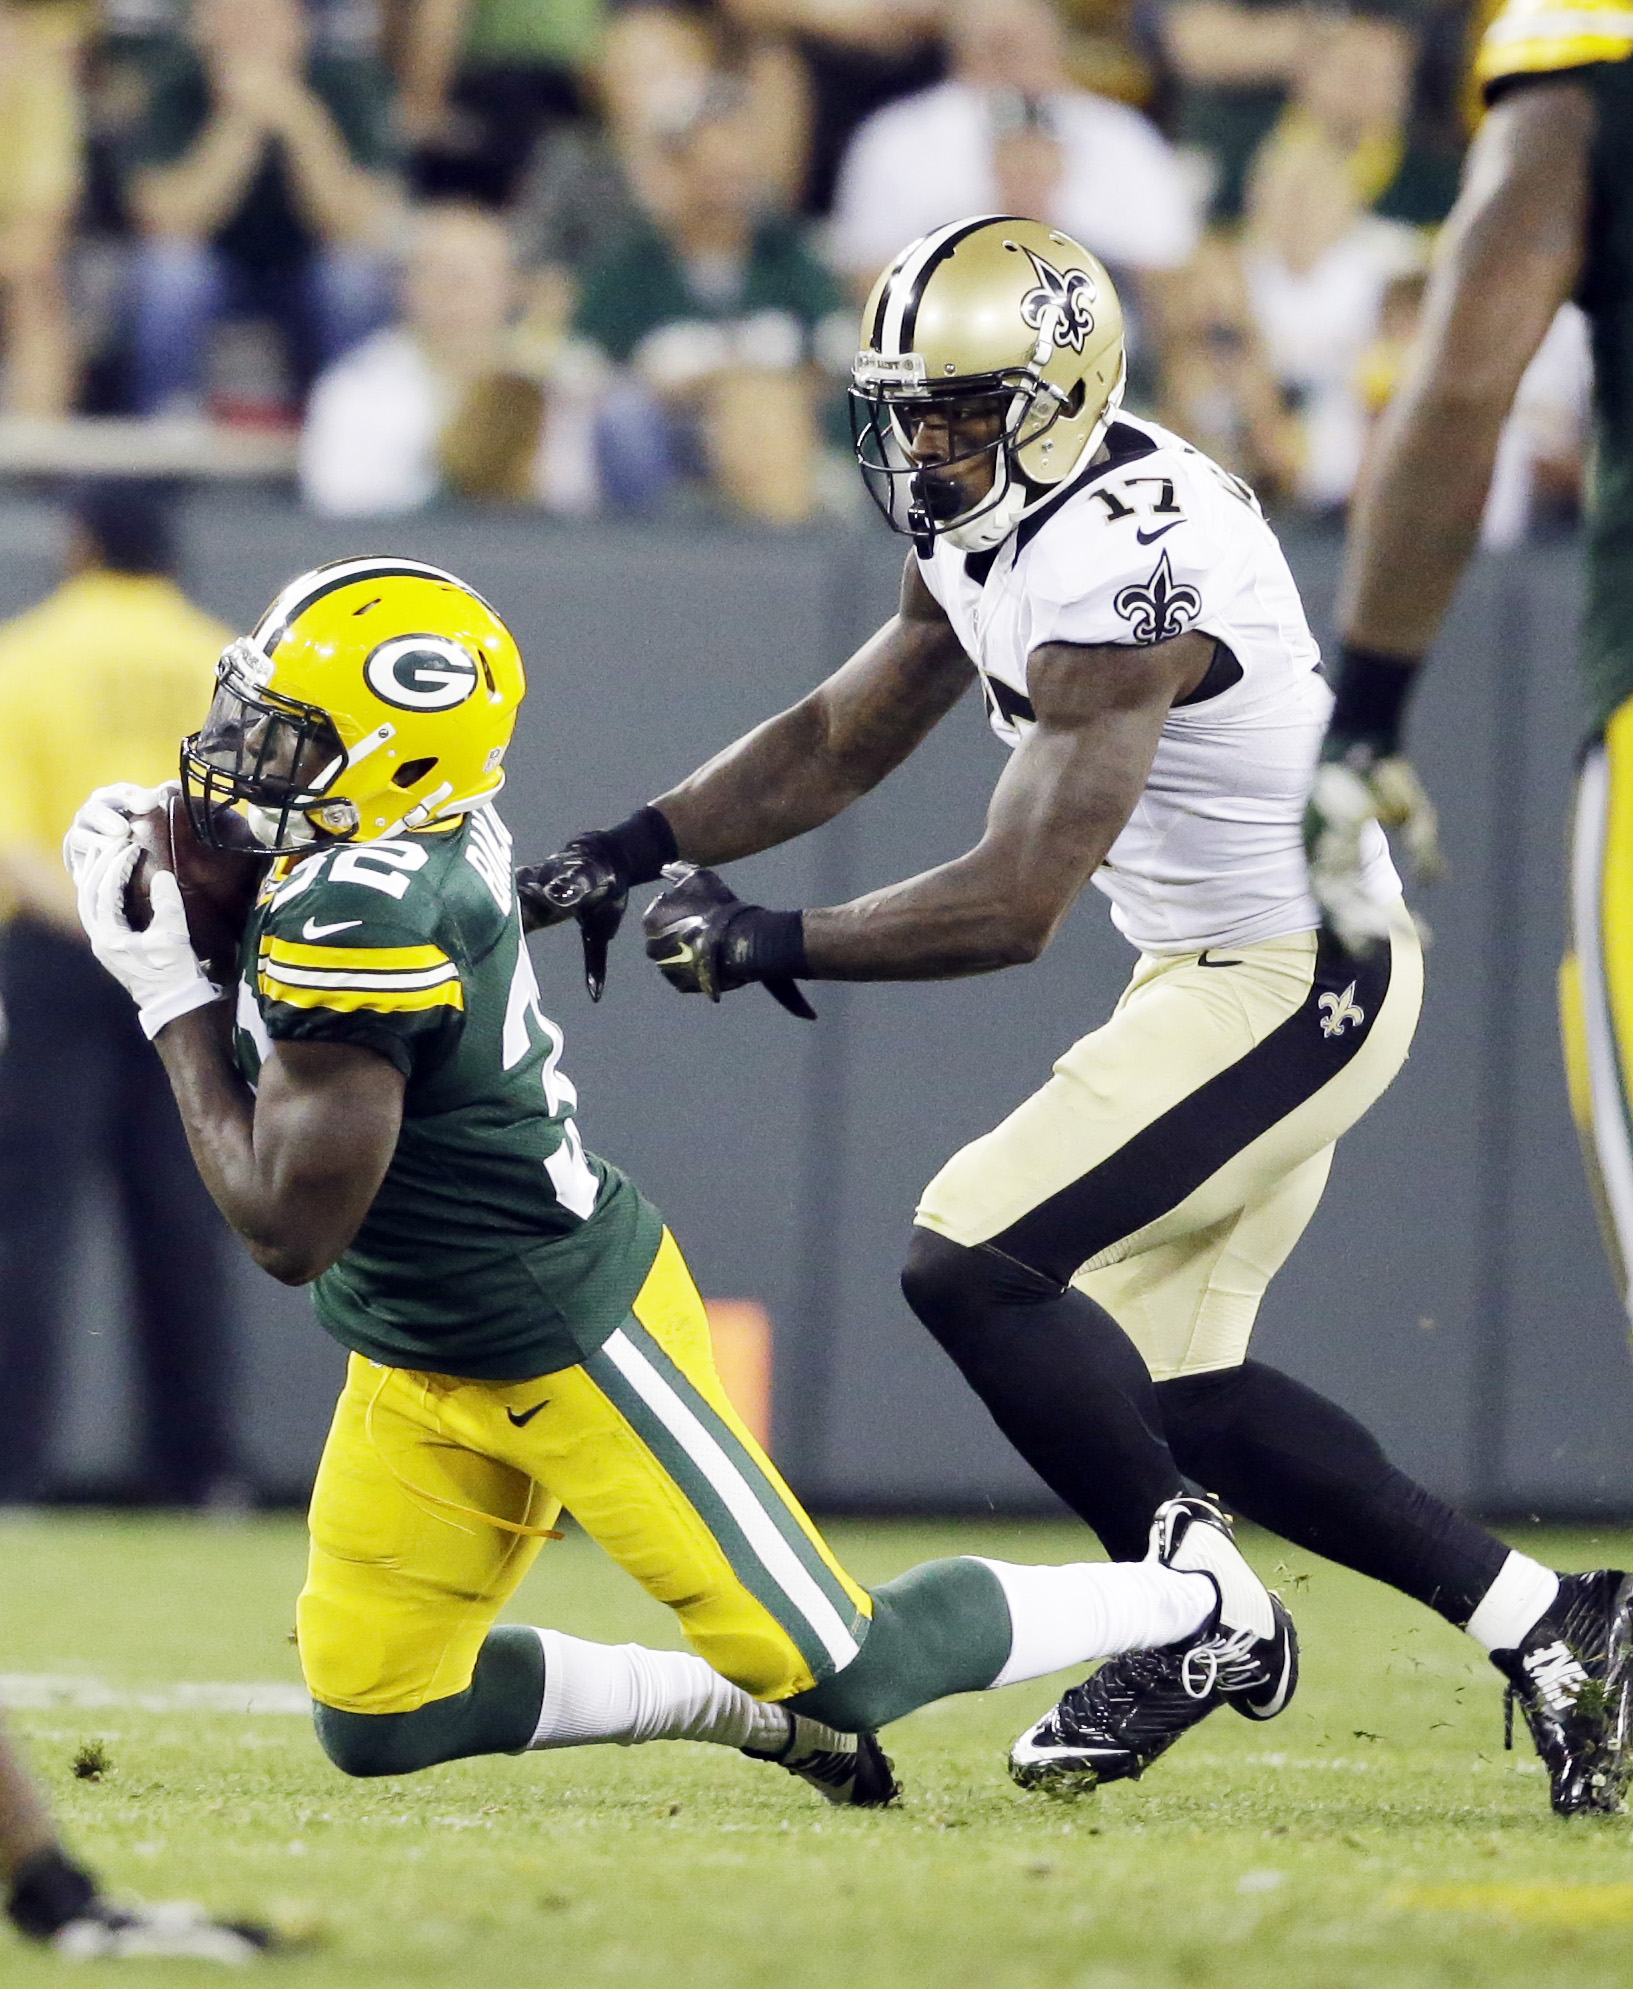 Green Bay Packers' Chris Banjo intercepts a pass in front of New Orleans Saints' Josh Morgan (17) during the second half of an NFL preseason football game Thursday, Sept. 3, 2015, in Green Bay, Wis. The Packers won 38-10. (AP Photo/Jeffrey Phelps)